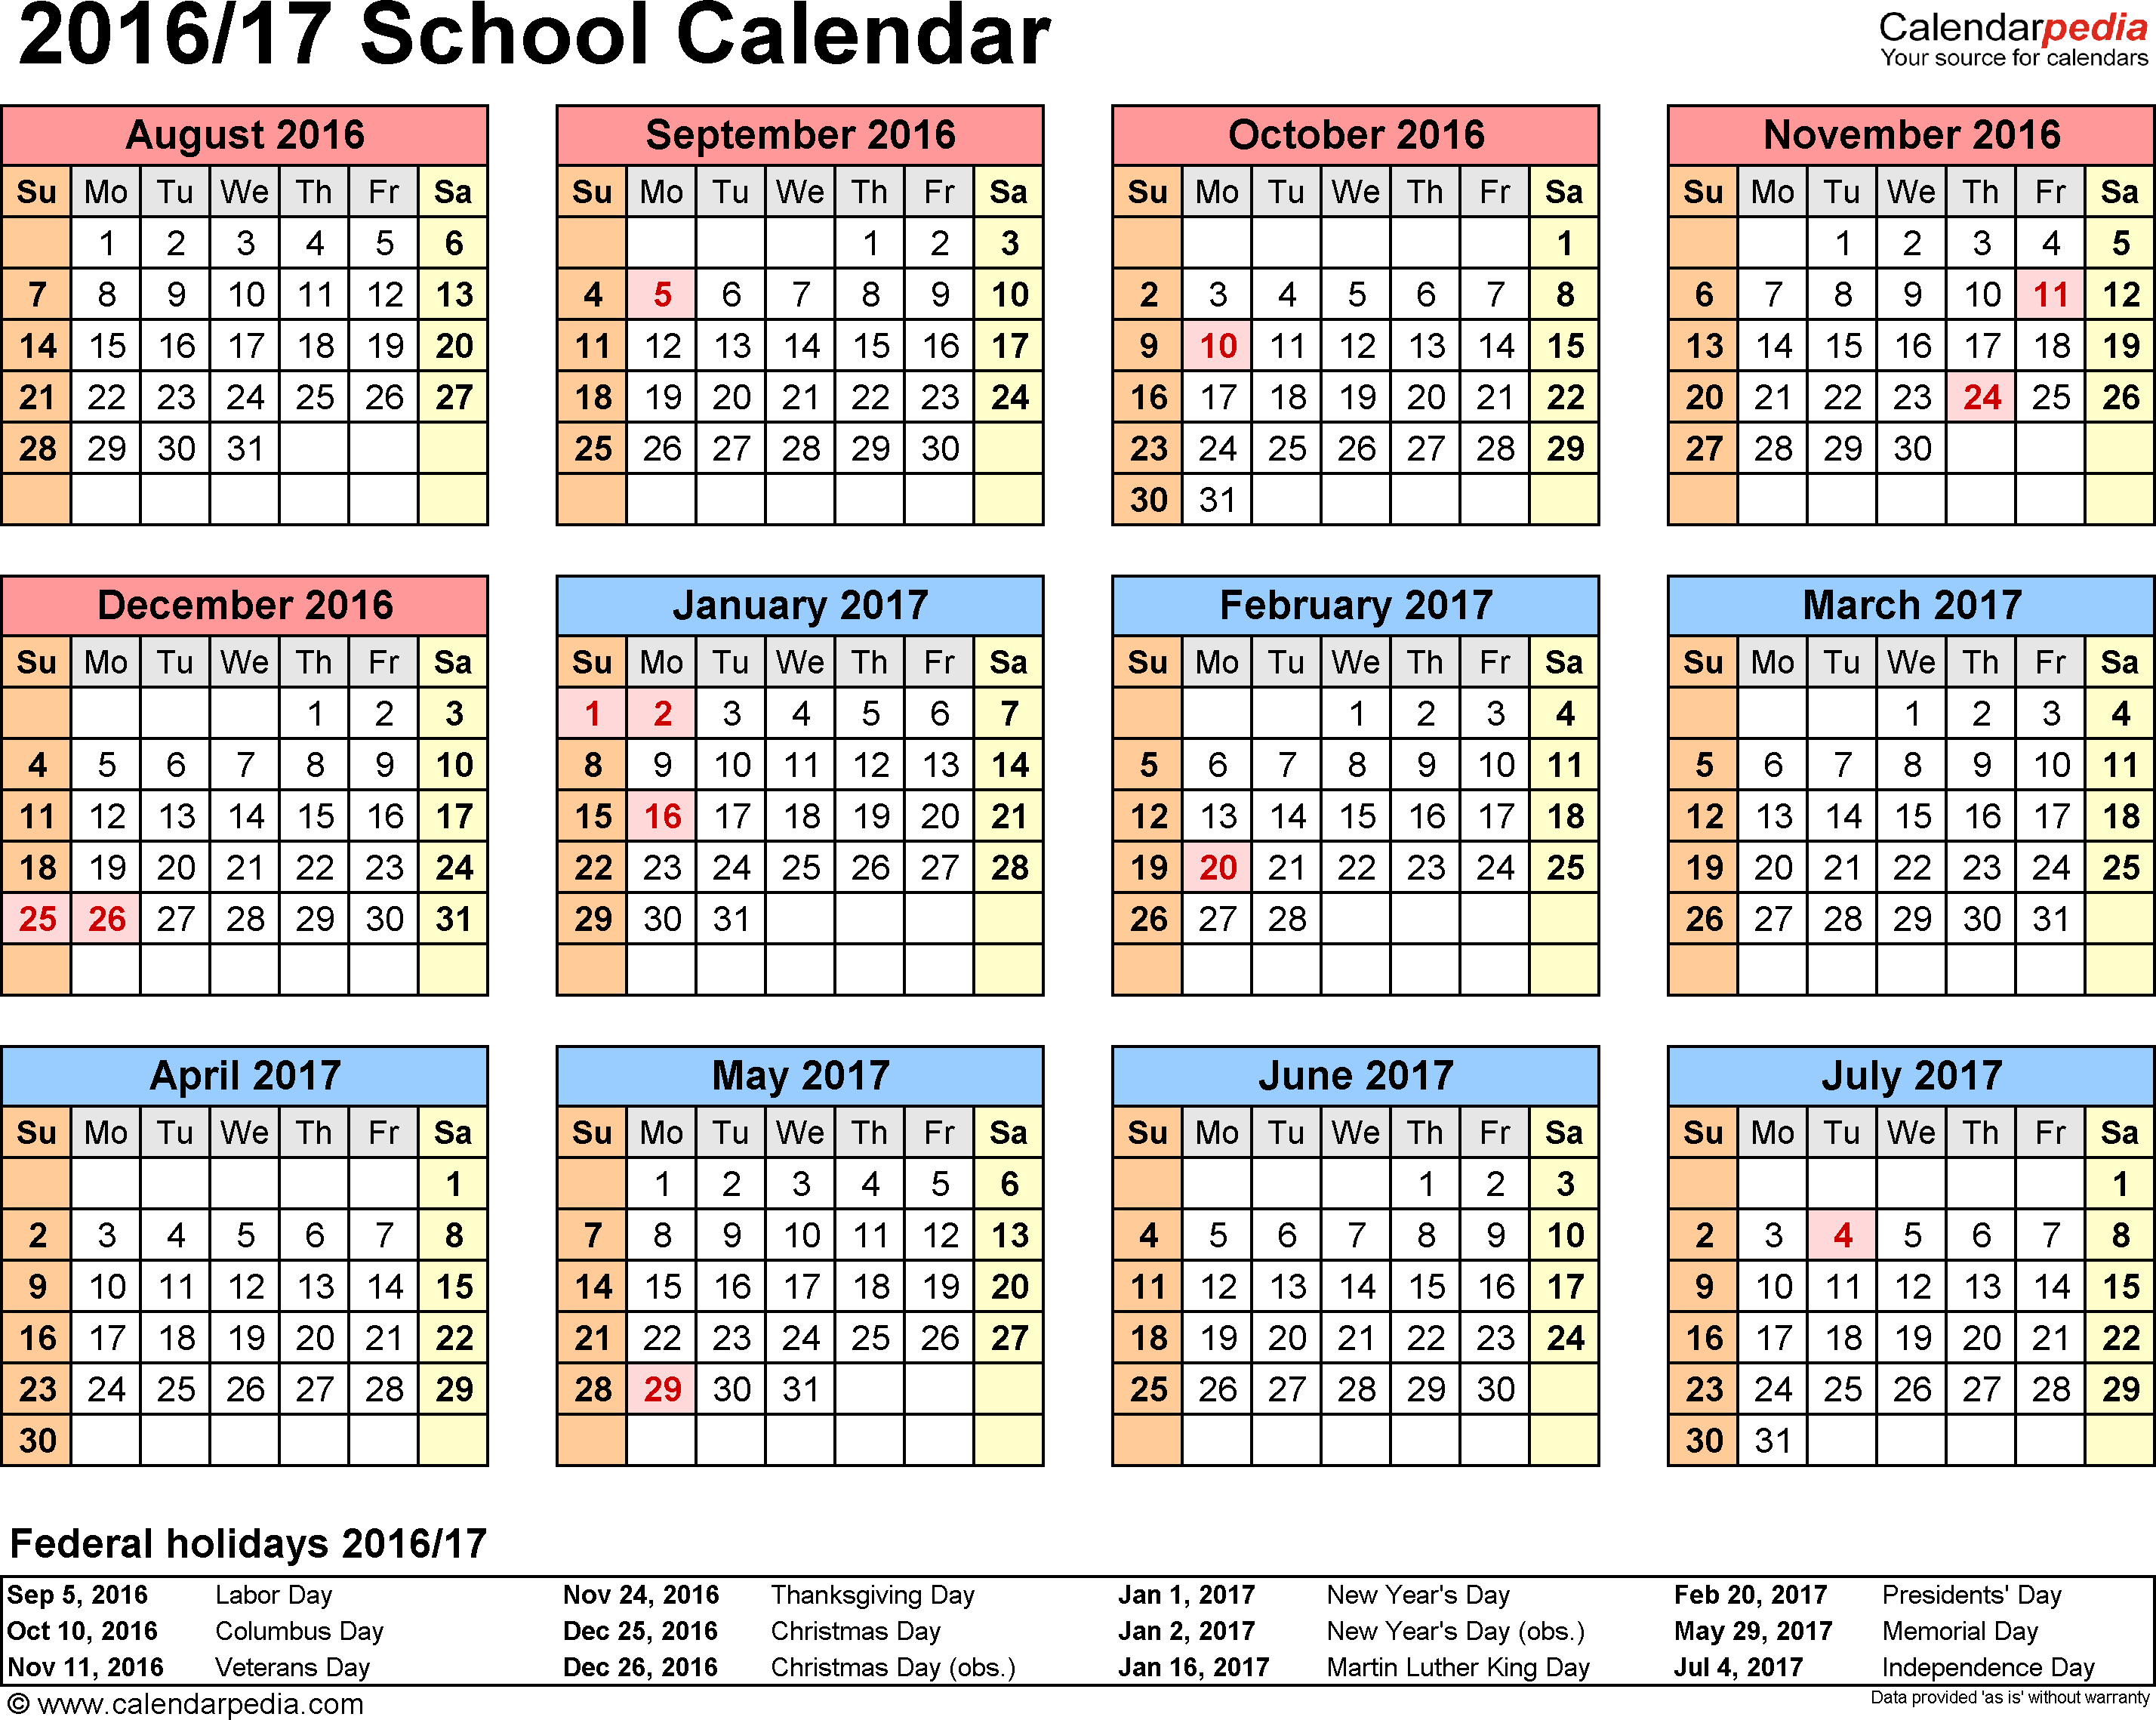 Template 4: School calendar 2016/17 for Word, landscape orientation, year at a glance, 1 page